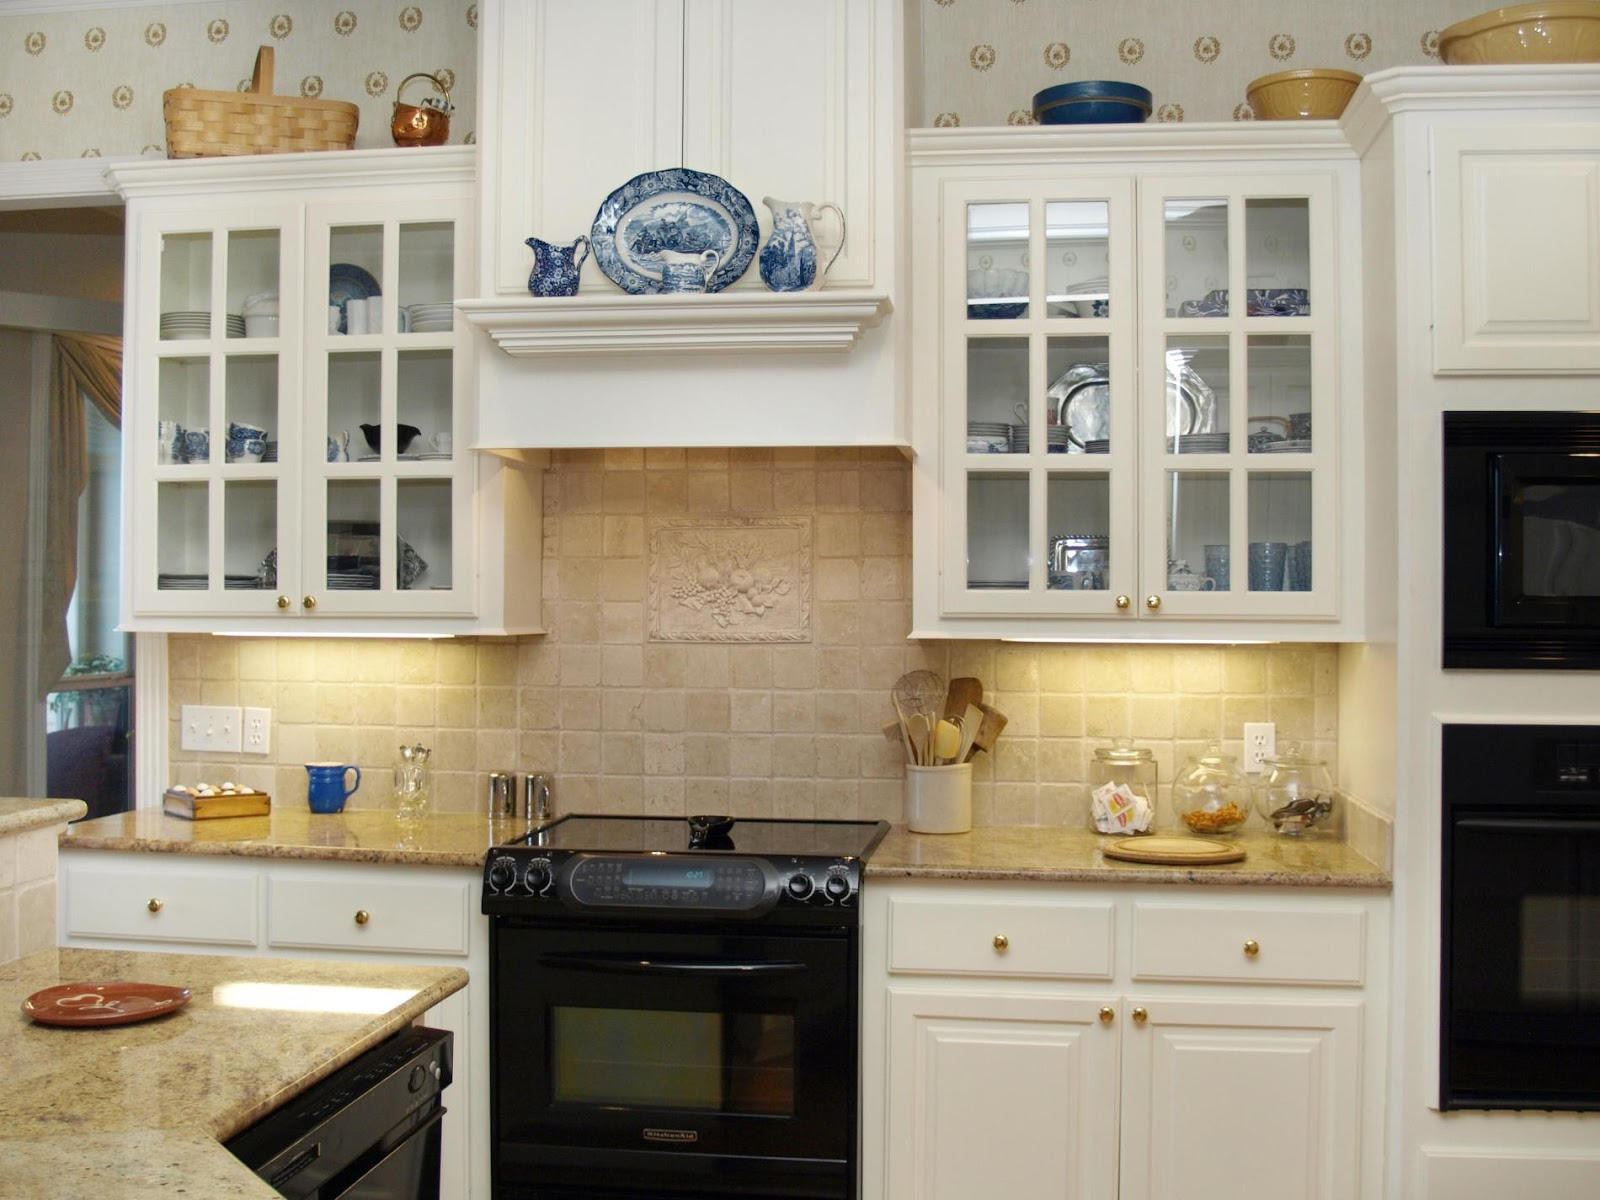 Kitchen shelves decoration dream house experience for Decor for kitchen